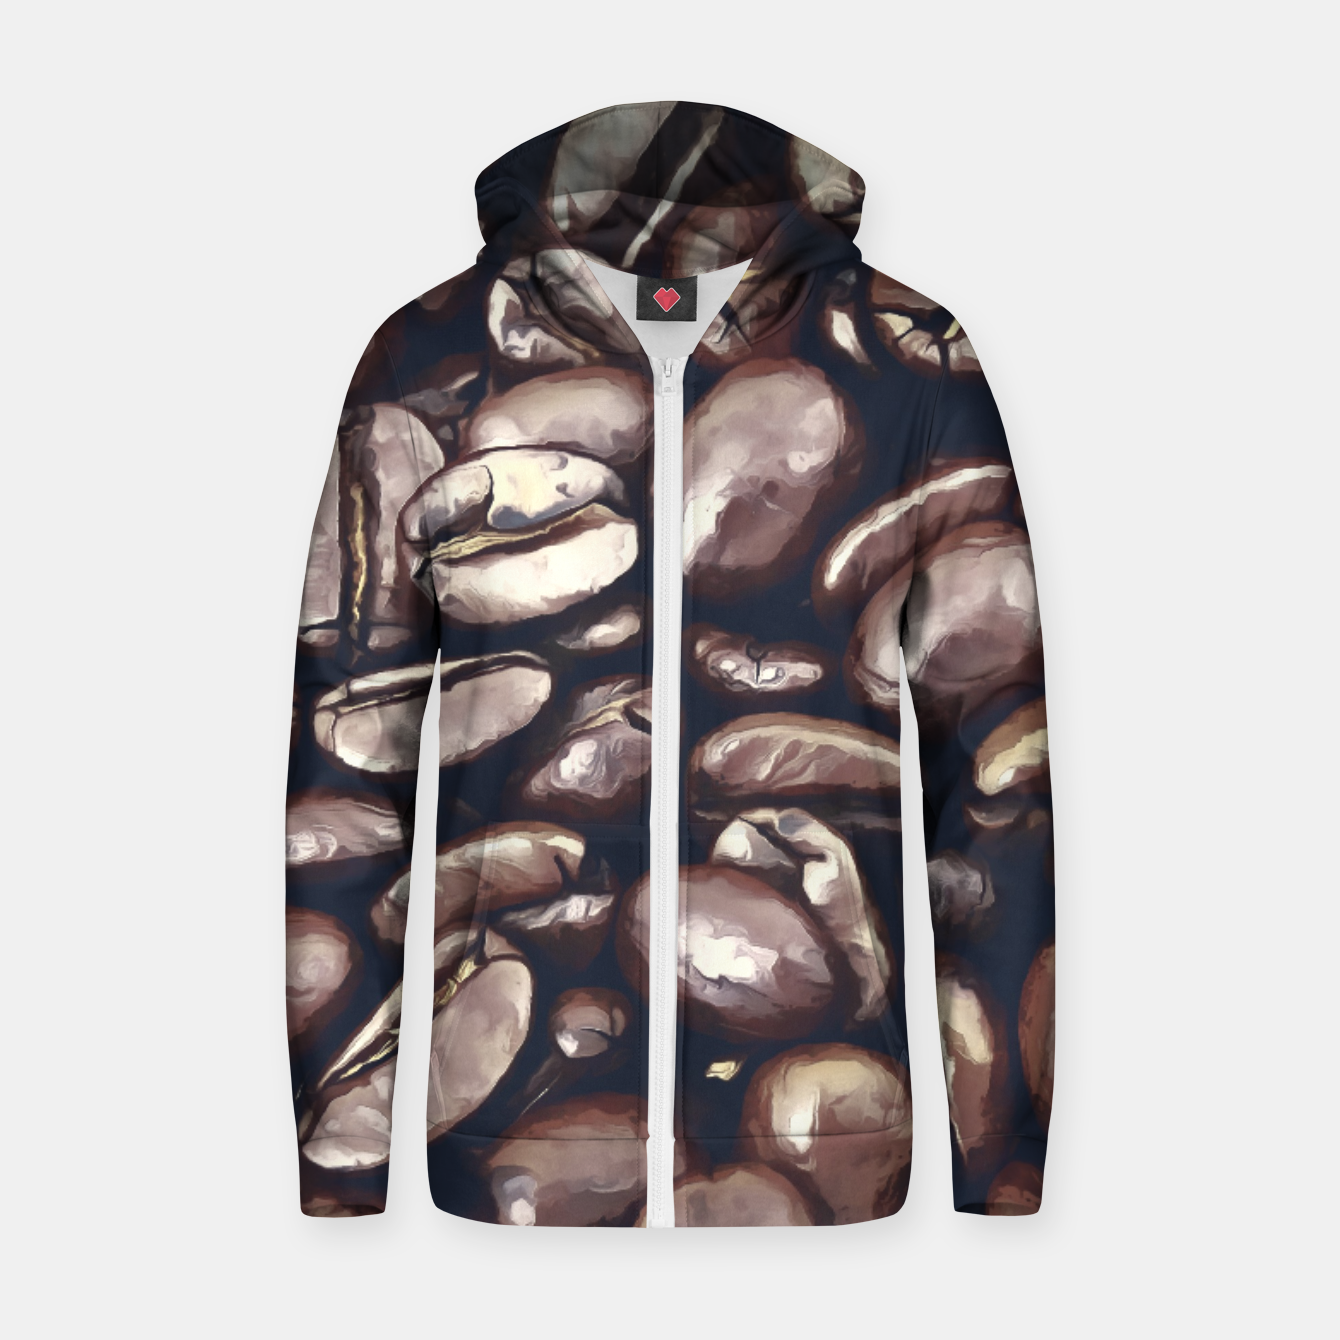 Image de roasted coffee beans texture acrfn Zip up hoodie - Live Heroes